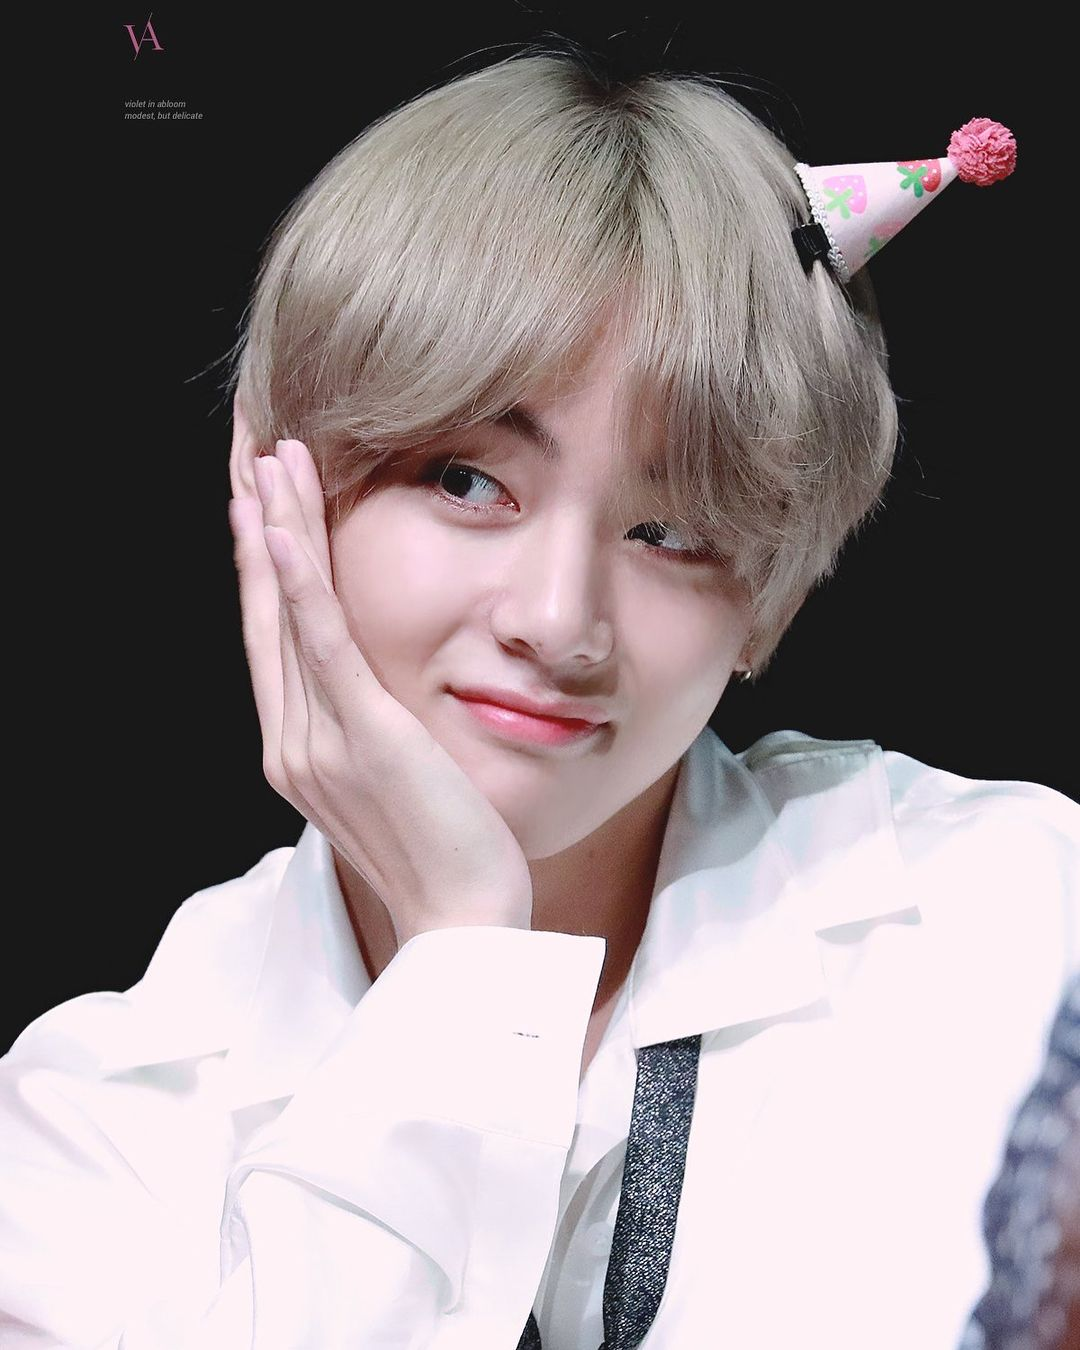 Most Handsome K Pop Male Idols Bts V Kim Tae Hyung Kpop K Pop Music K Pop Boy Groups Best K Pop Boy Bands Top Taehyung Kim Taehyung Bts Taehyung